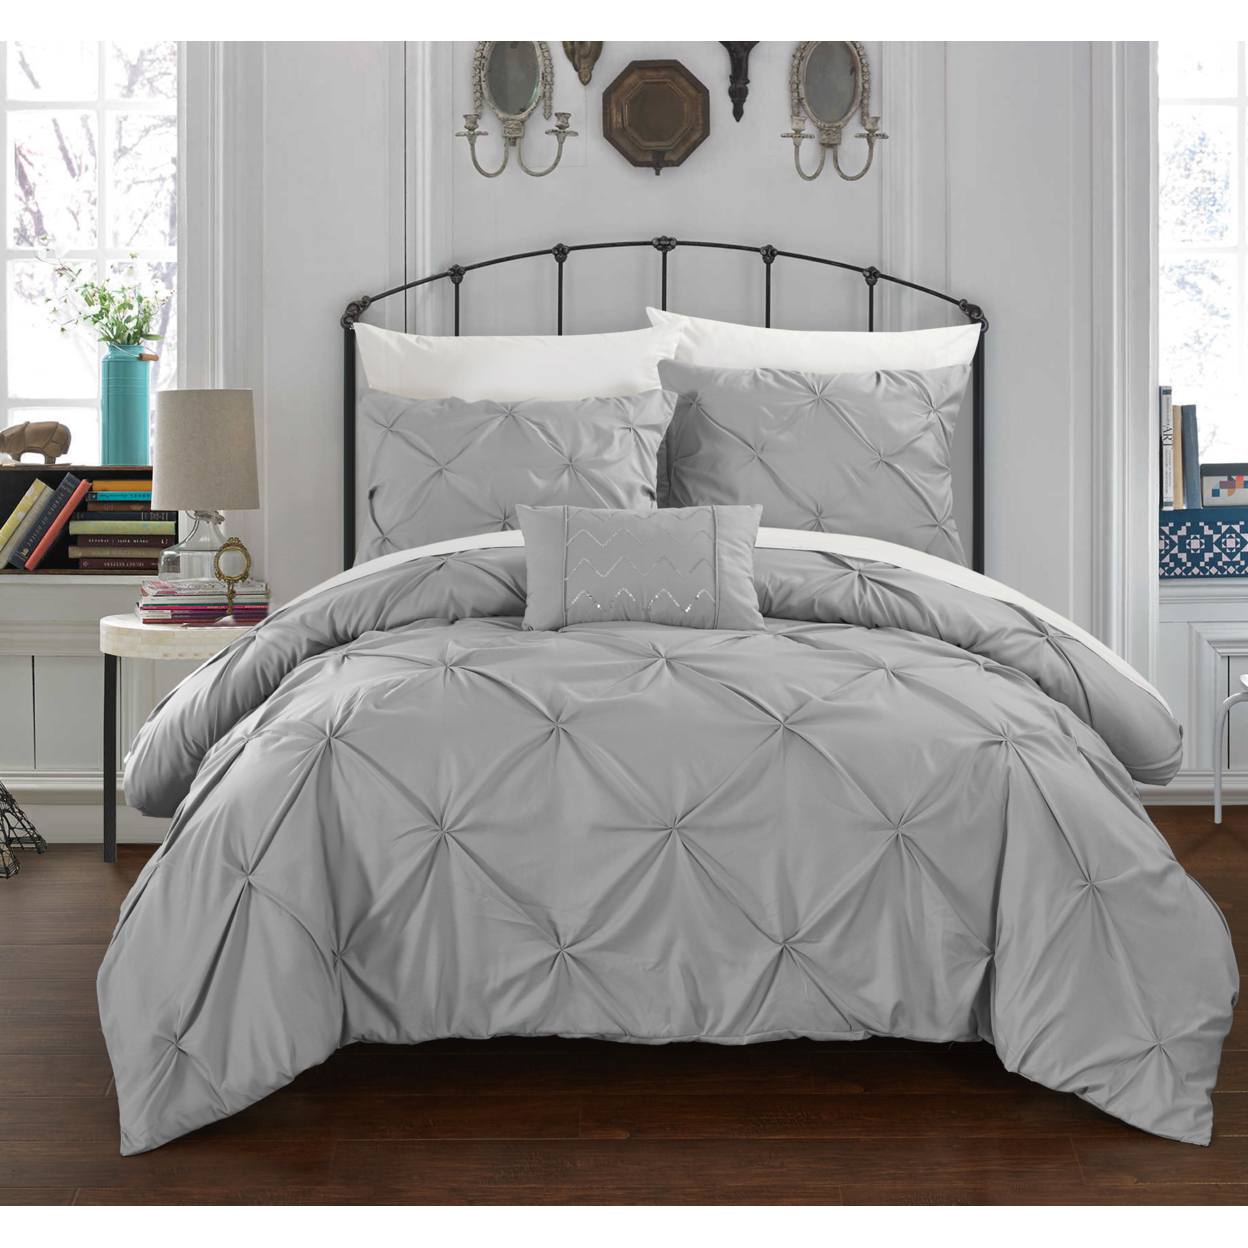 Chic Home 3/4 Piece Whitley Pinch Pleated, ruffled and pleated complete Duvet Cover Set Shams and Decorative Pillows included - King, Silver 58b59e97c915e40c79700d26